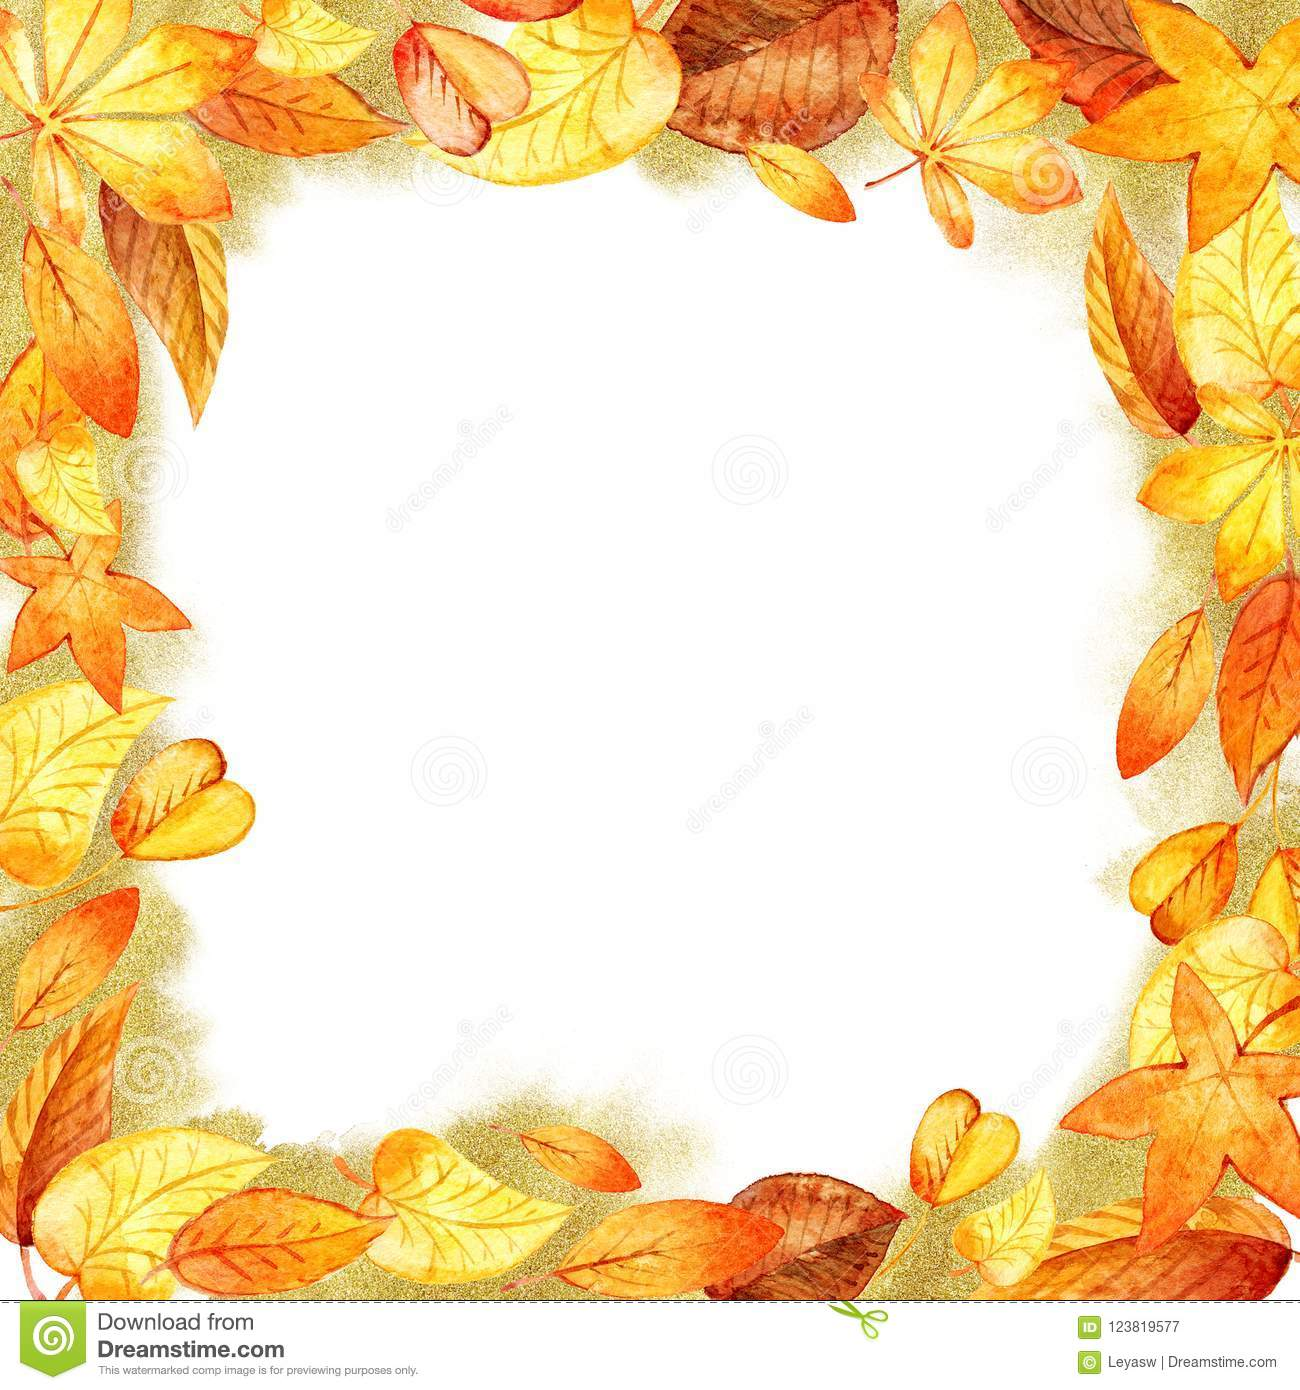 autumn leaves fall frame template watercolor isolated orange leaf